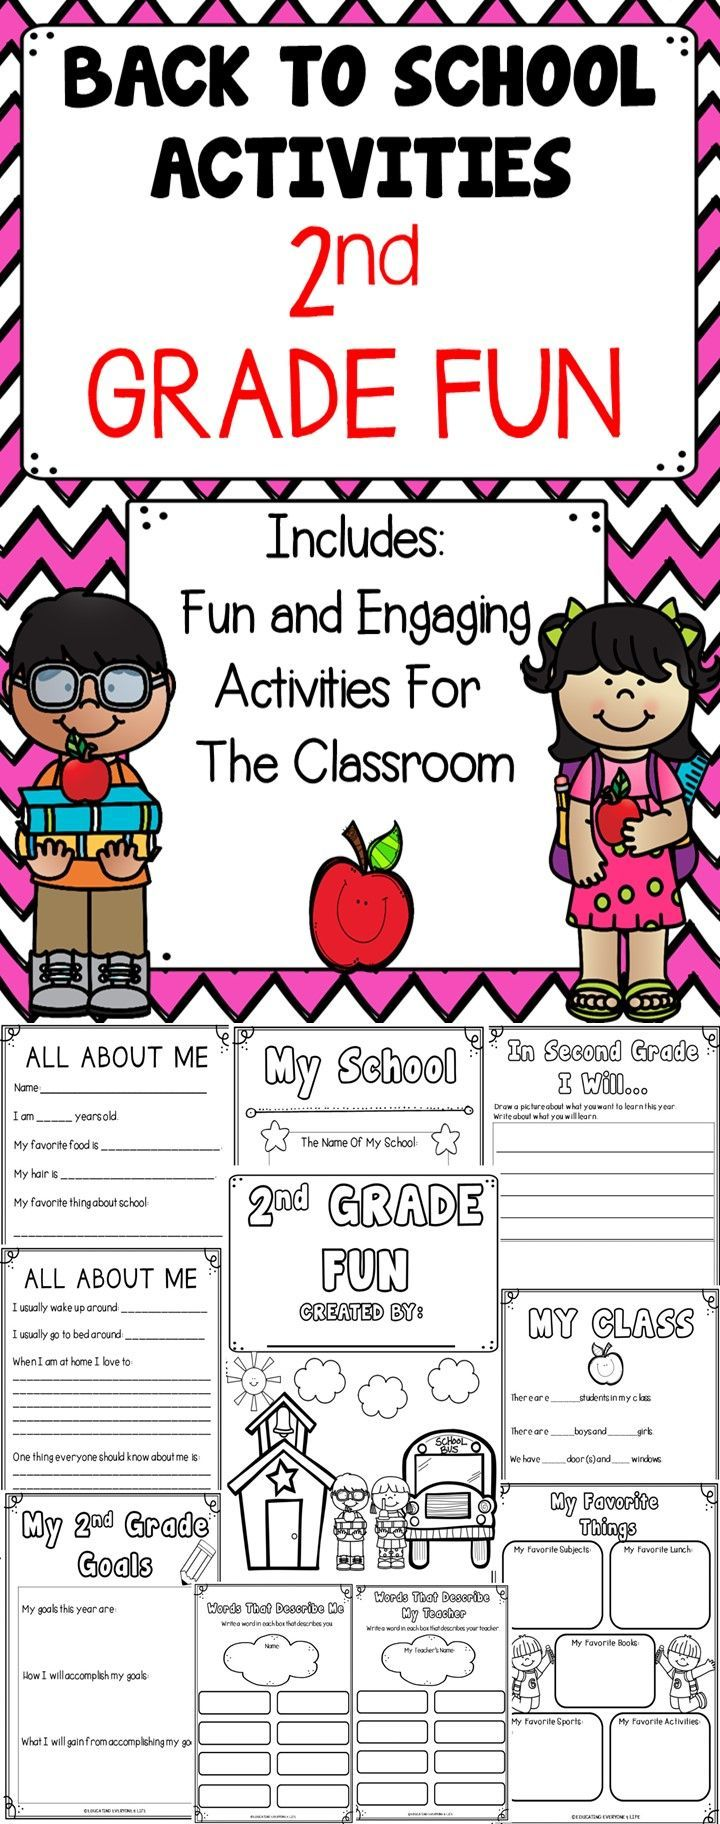 126 best images about Back to School on Pinterest | First ...